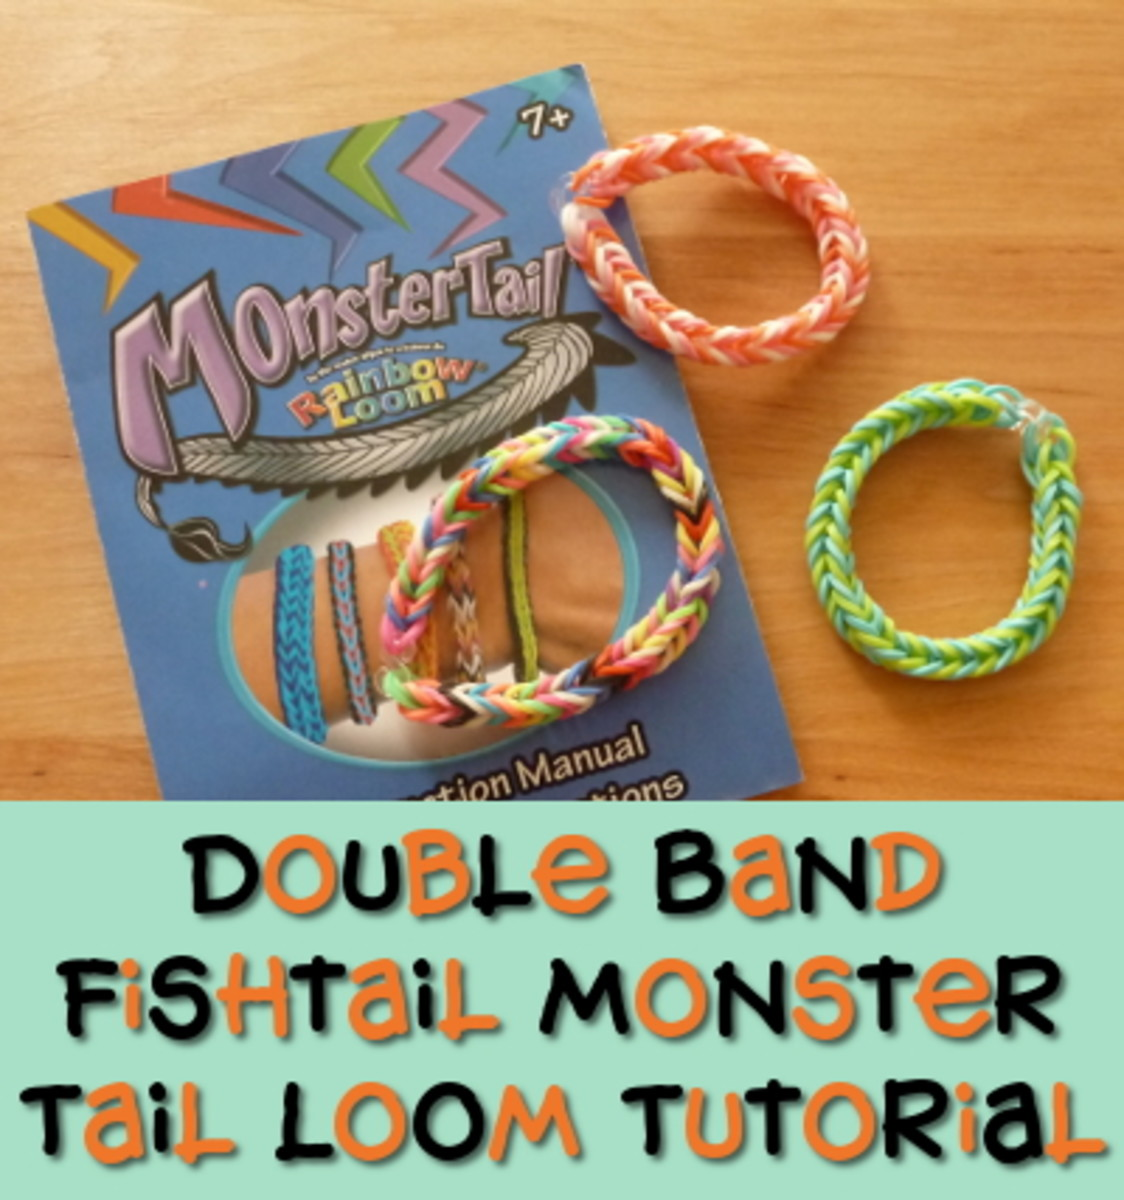 The double band fishtail monster tail rainbow loom rubber band tutorial